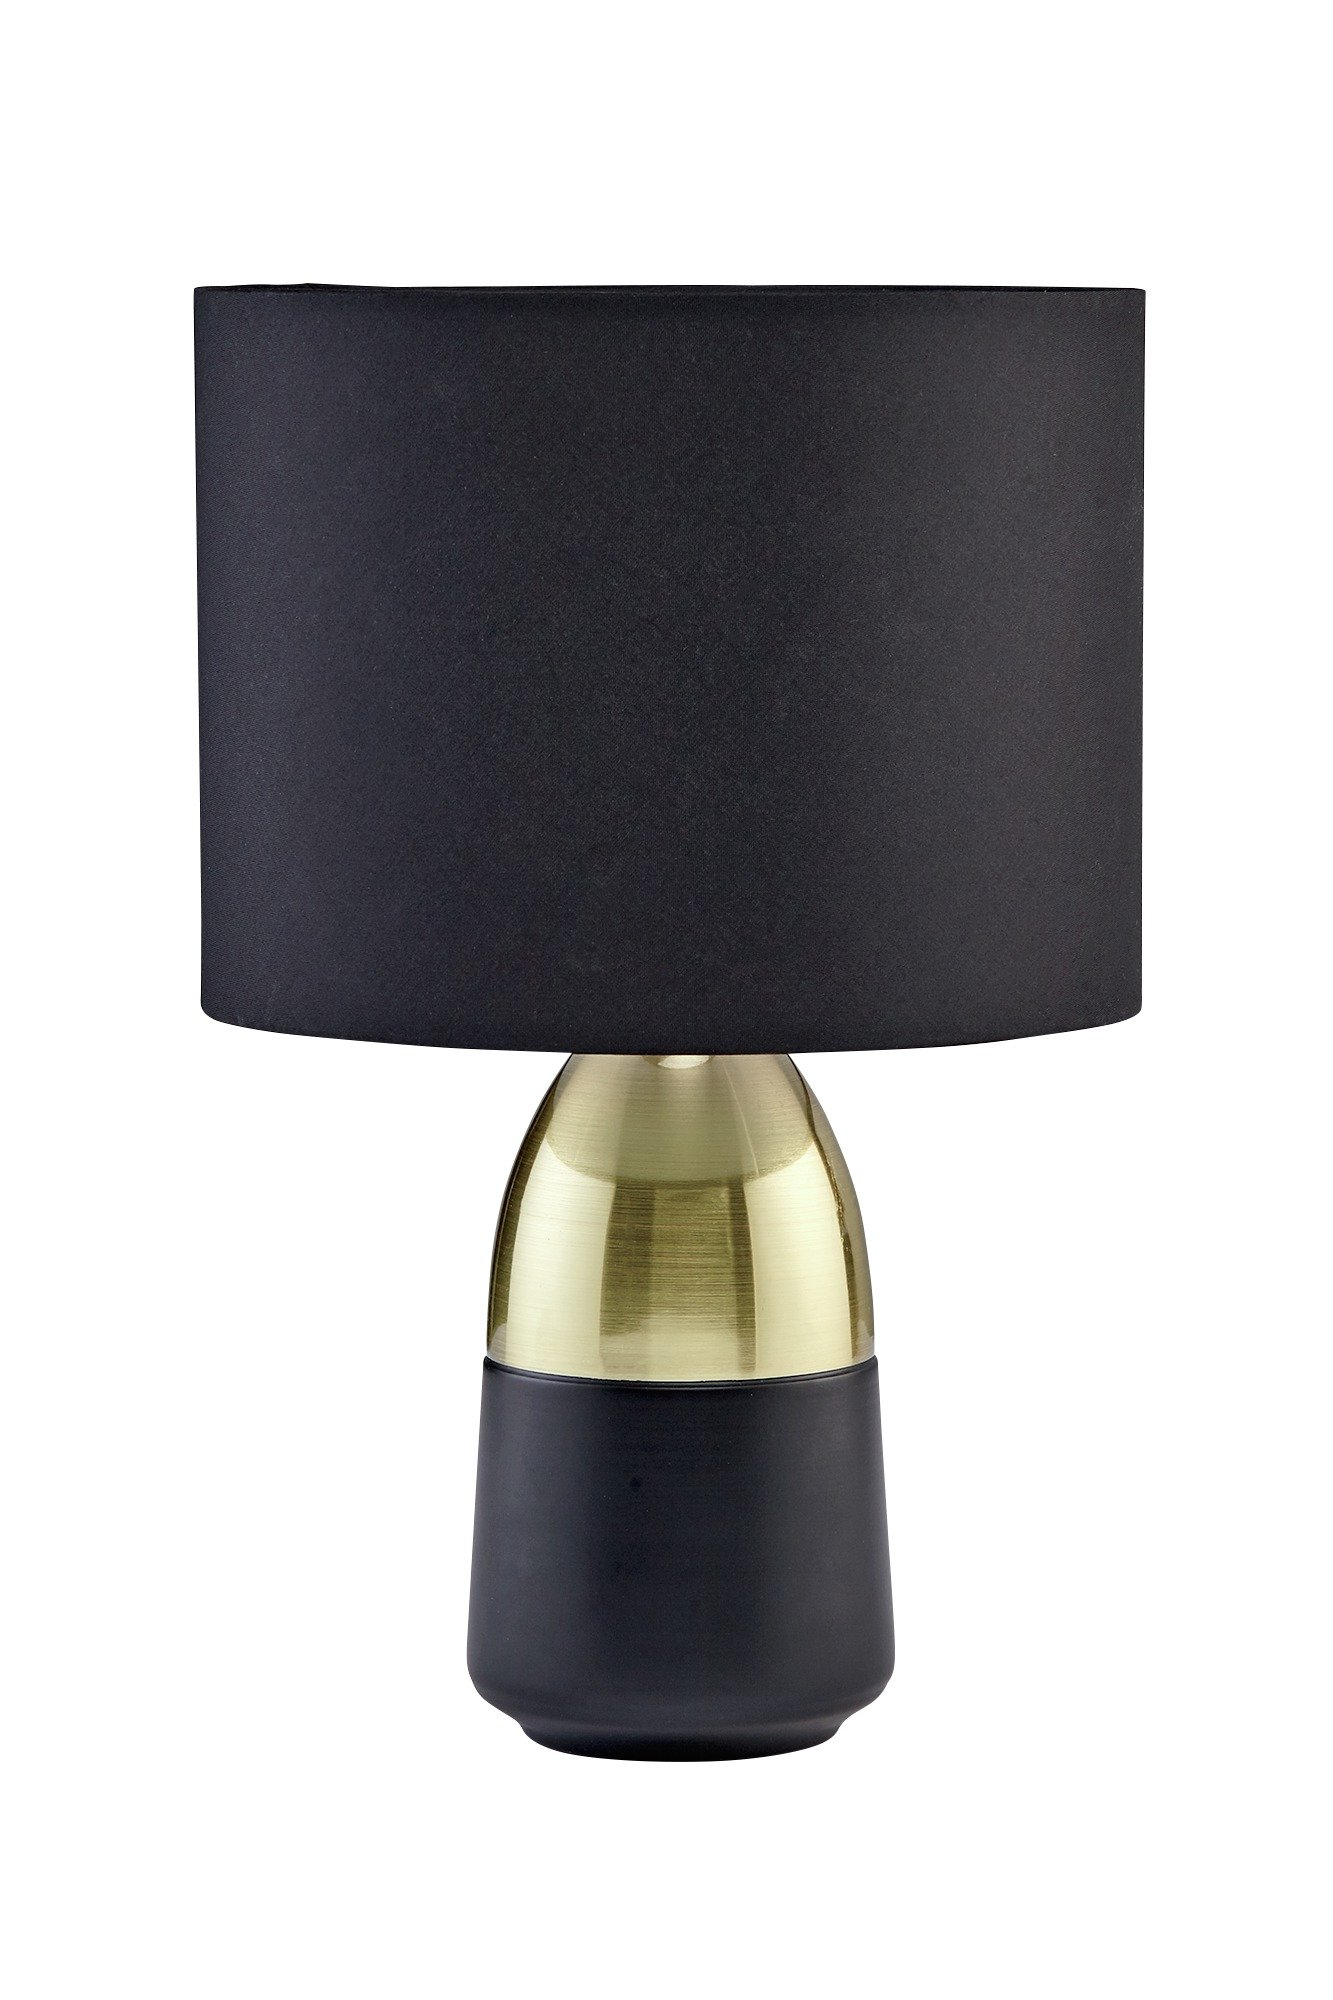 Argos Home Duno Touch Table Lamp - Black & Brass